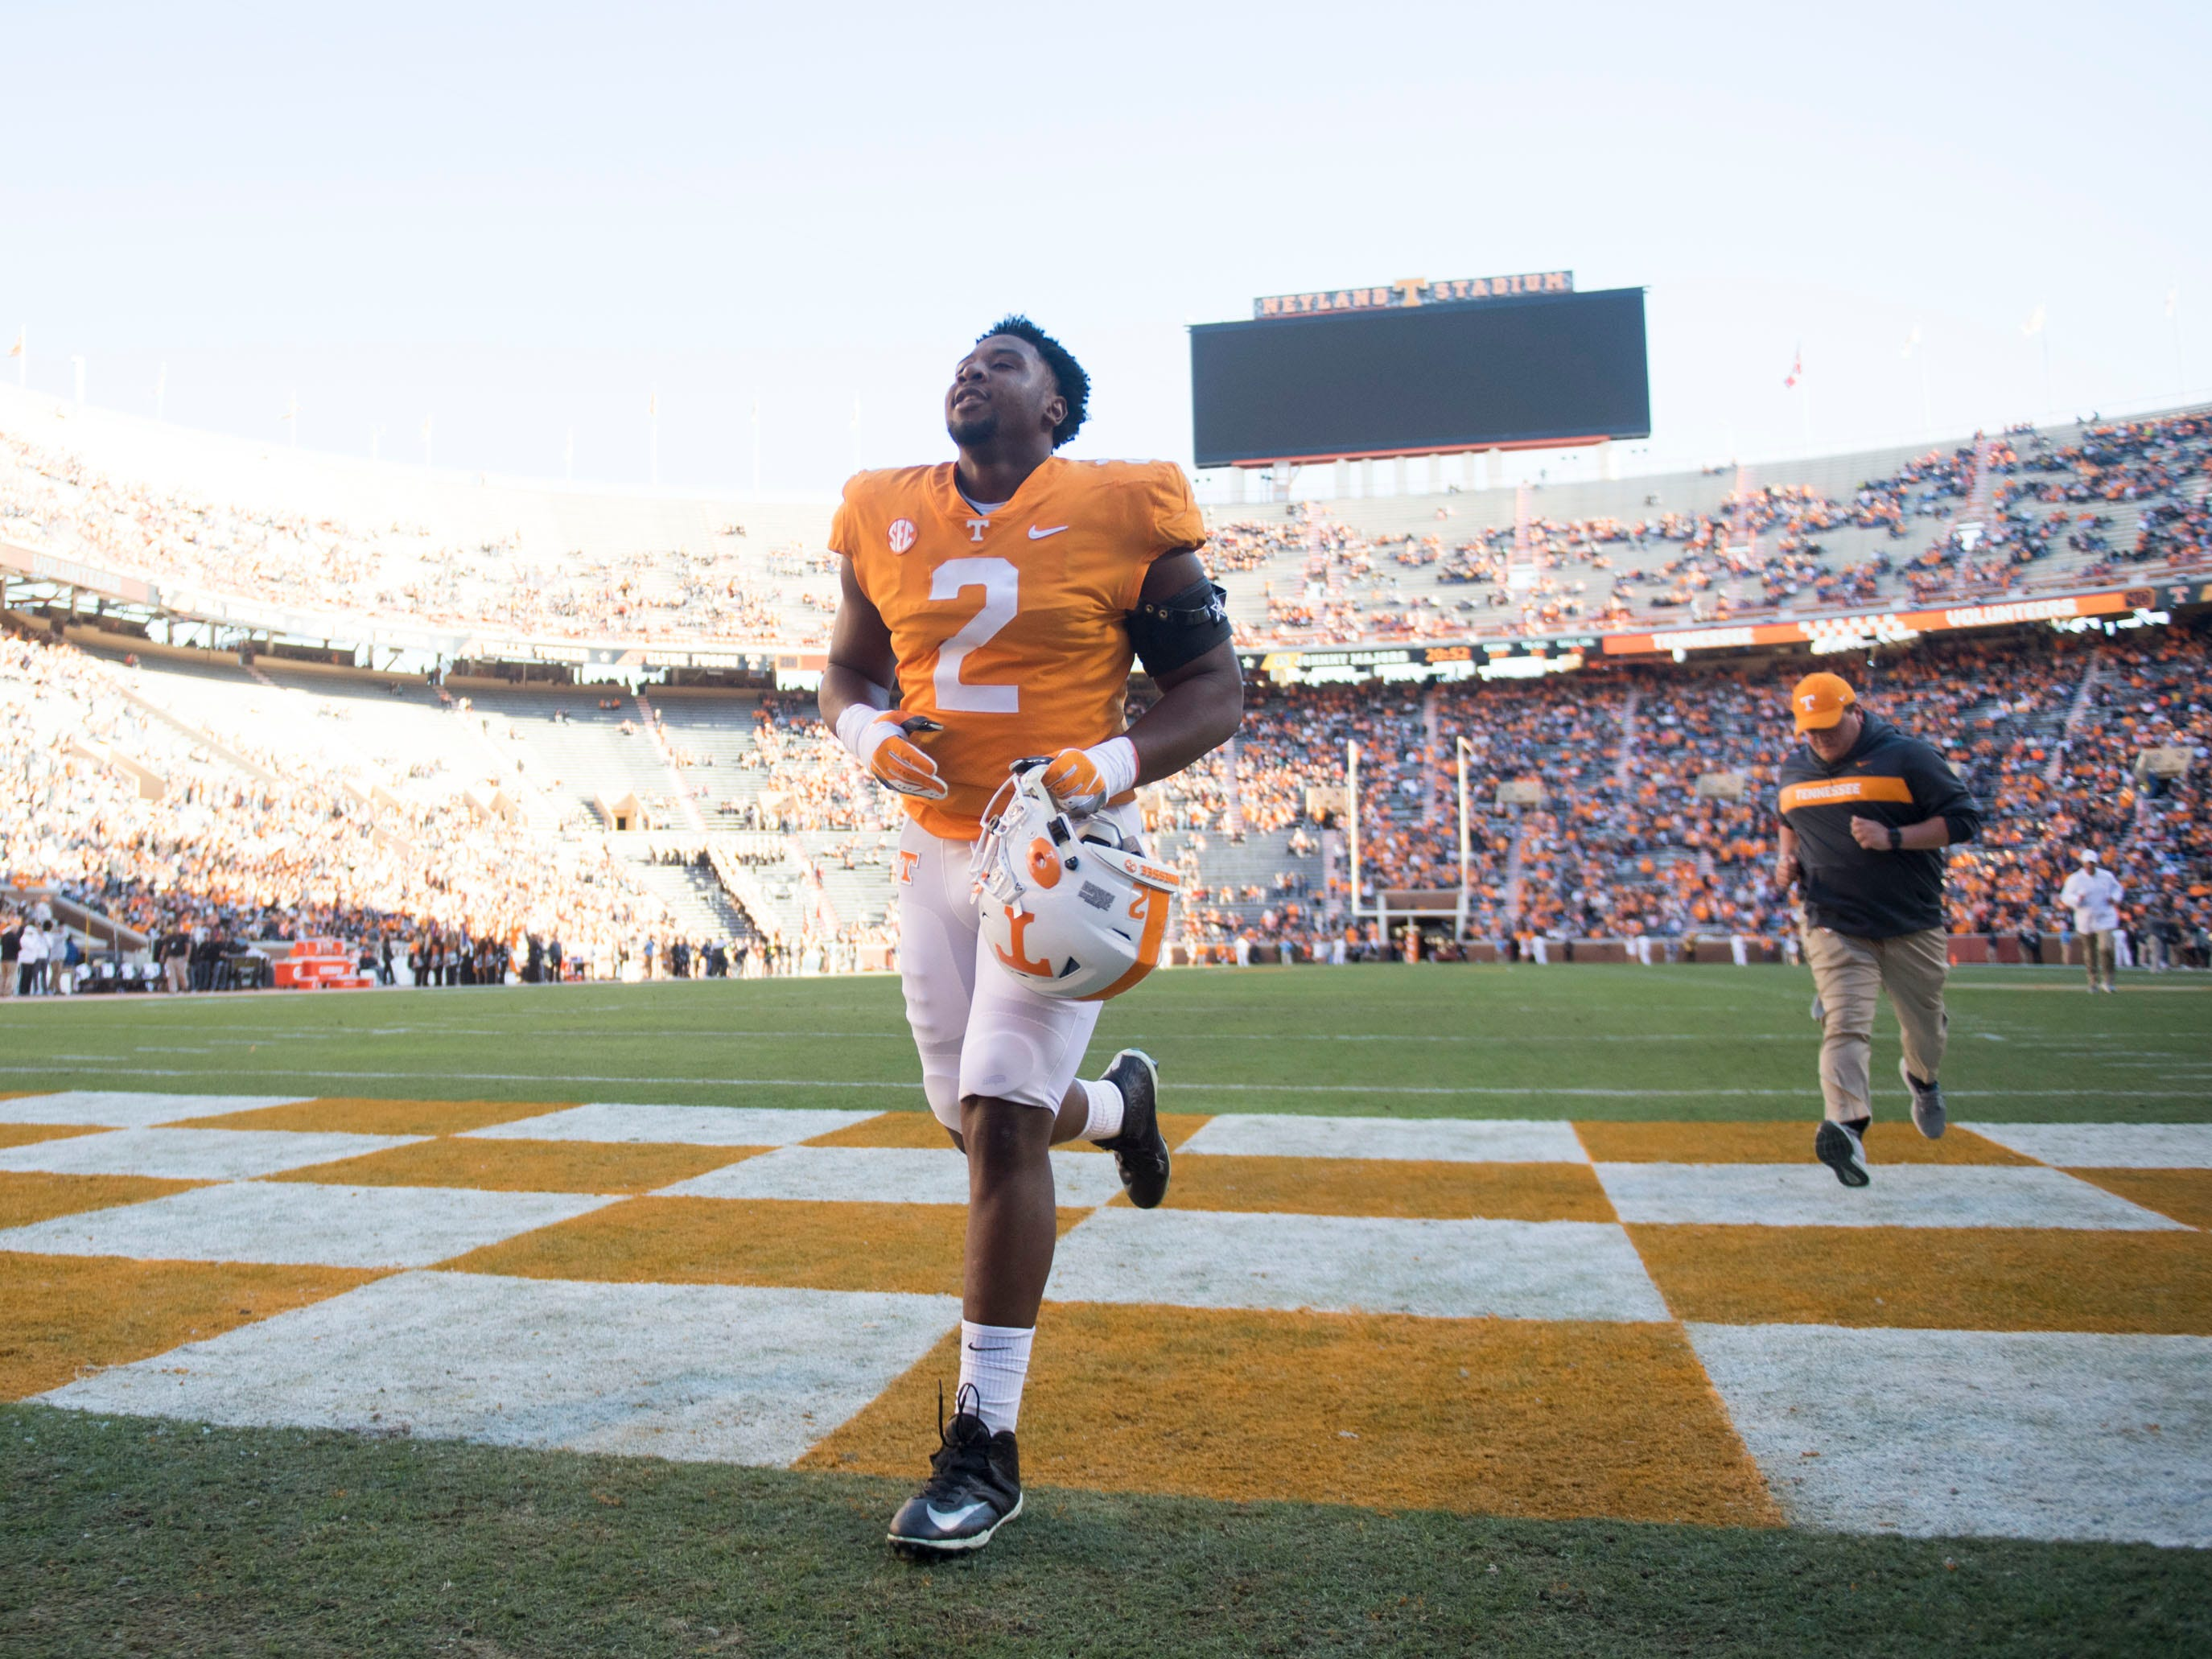 Tennessee defensive lineman Shy Tuttle (2) returns to the locker room after he is honored as a senior during ceremonies before the start of the game against Missouri on Saturday, November 17, 2018.